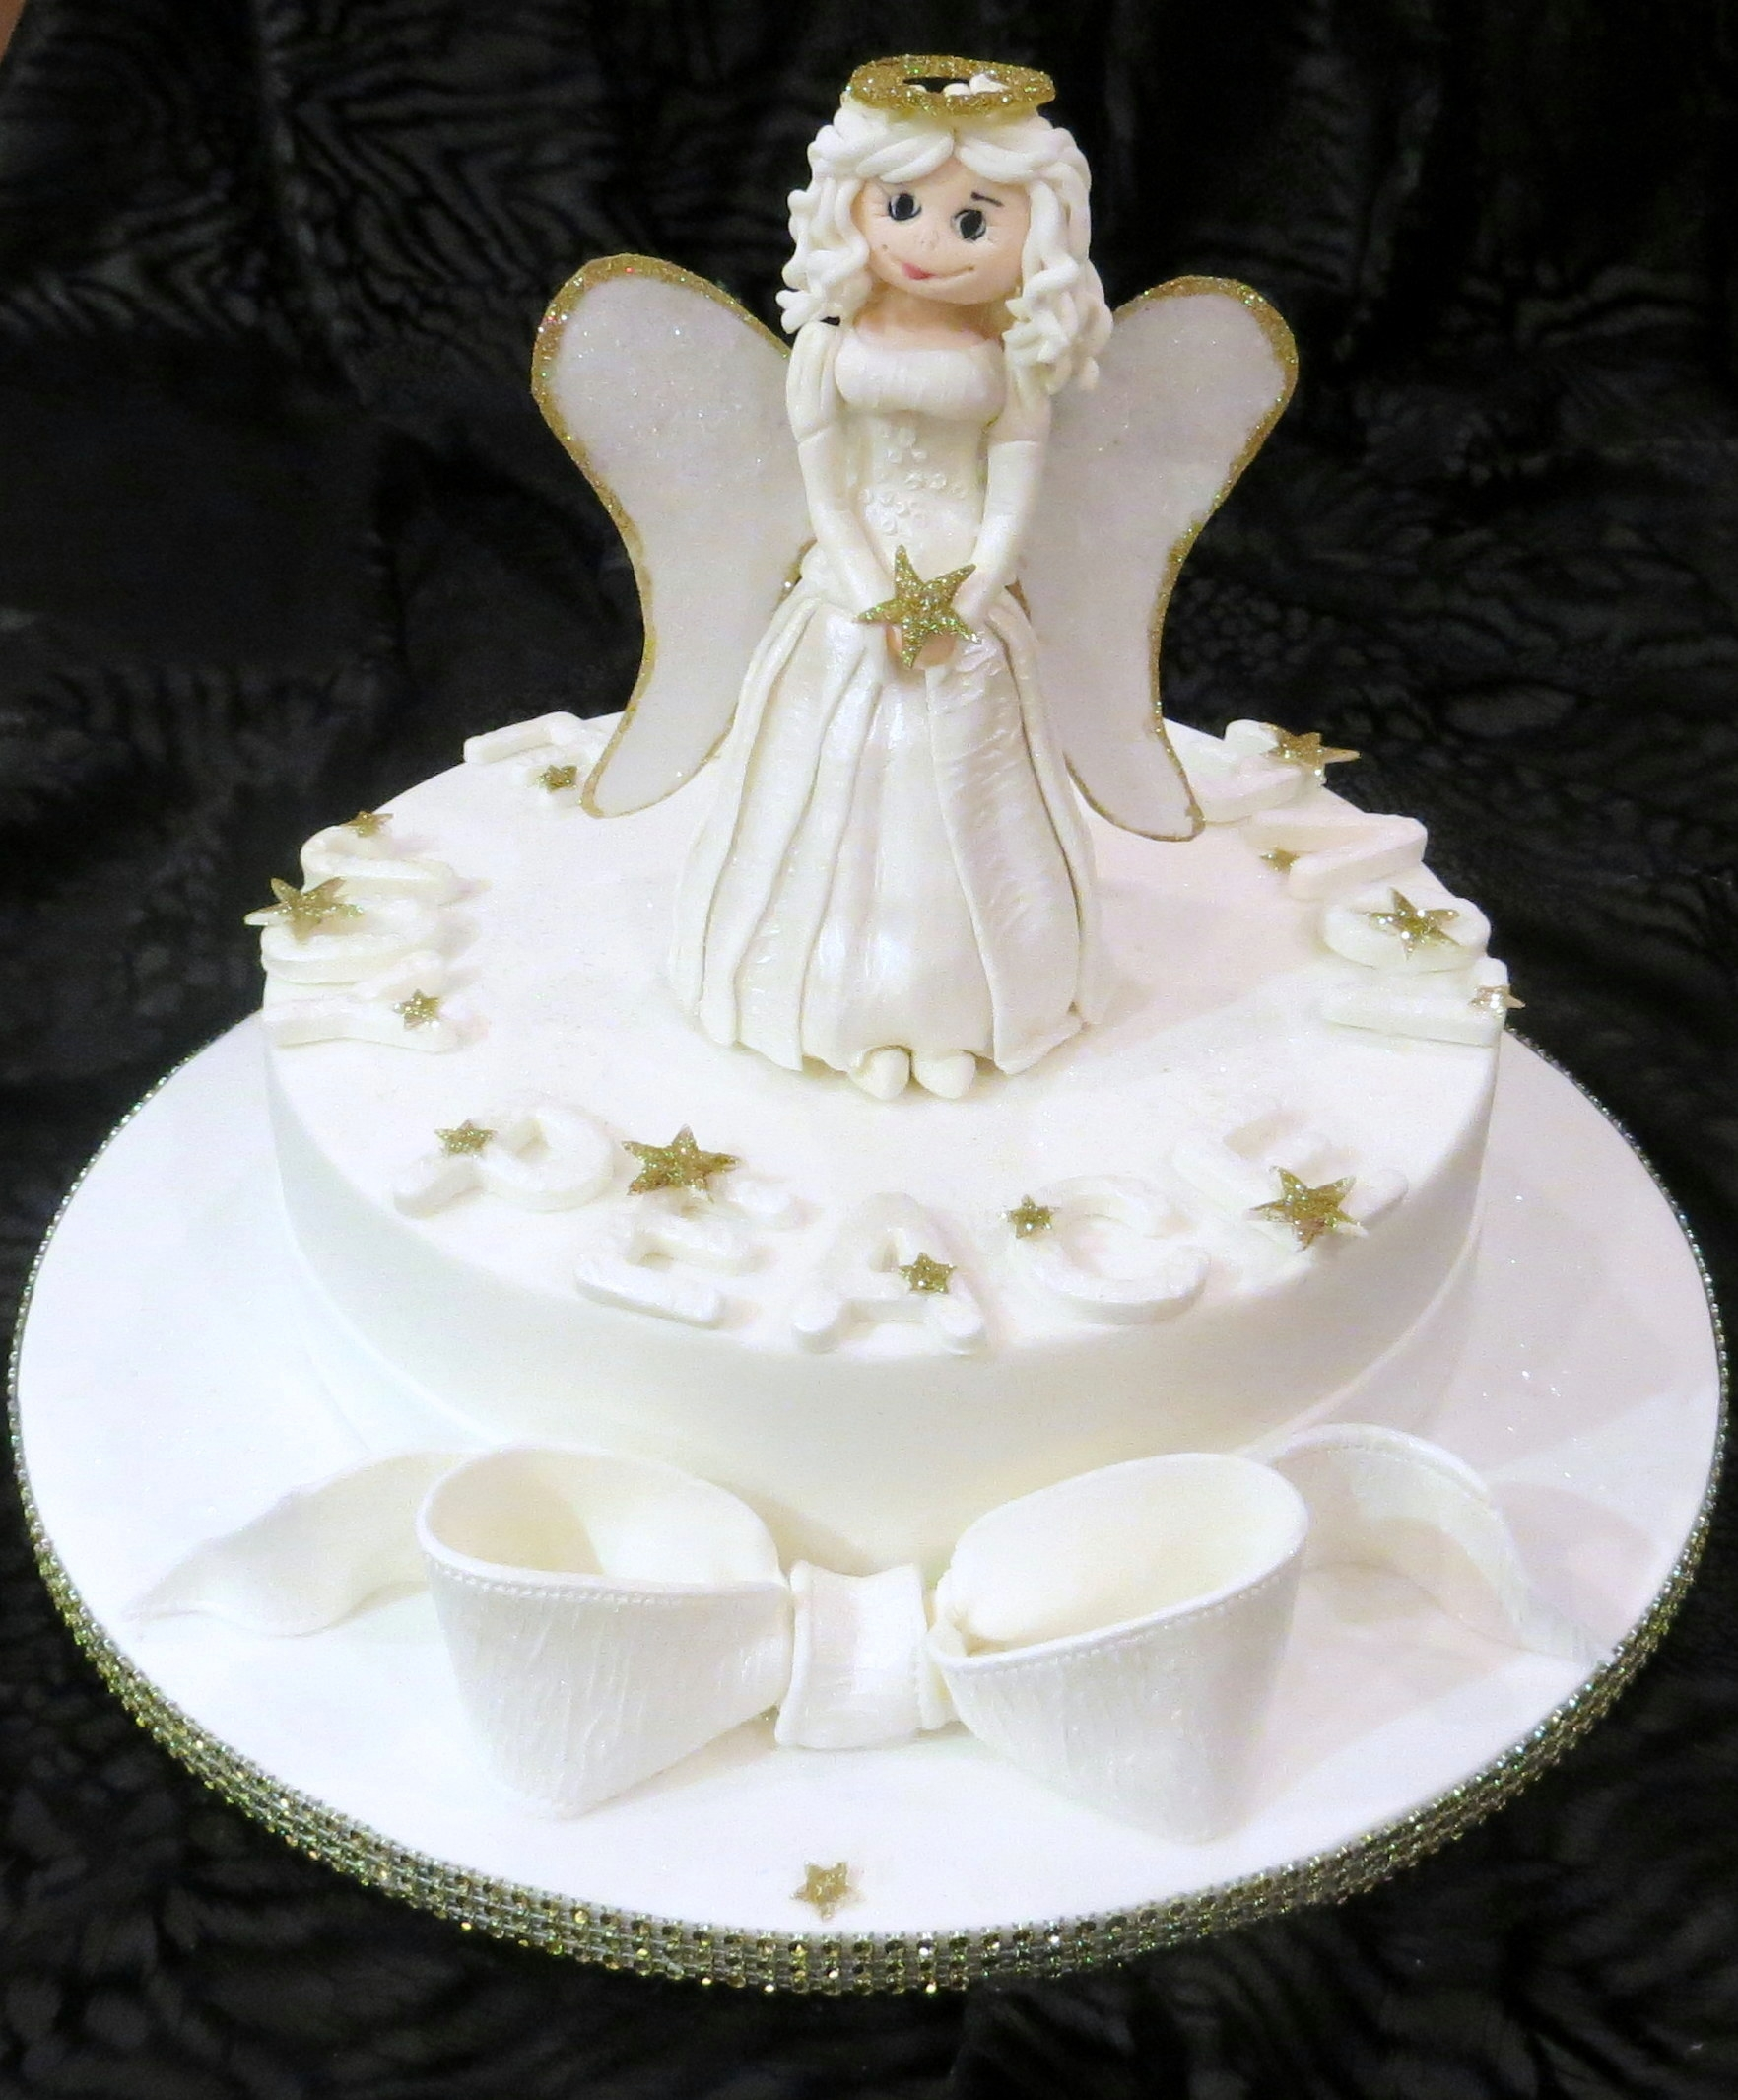 Cake Art Instant Mix Modelling Paste : Christmas Cake With Edible Angel Made From Modelling Paste ...